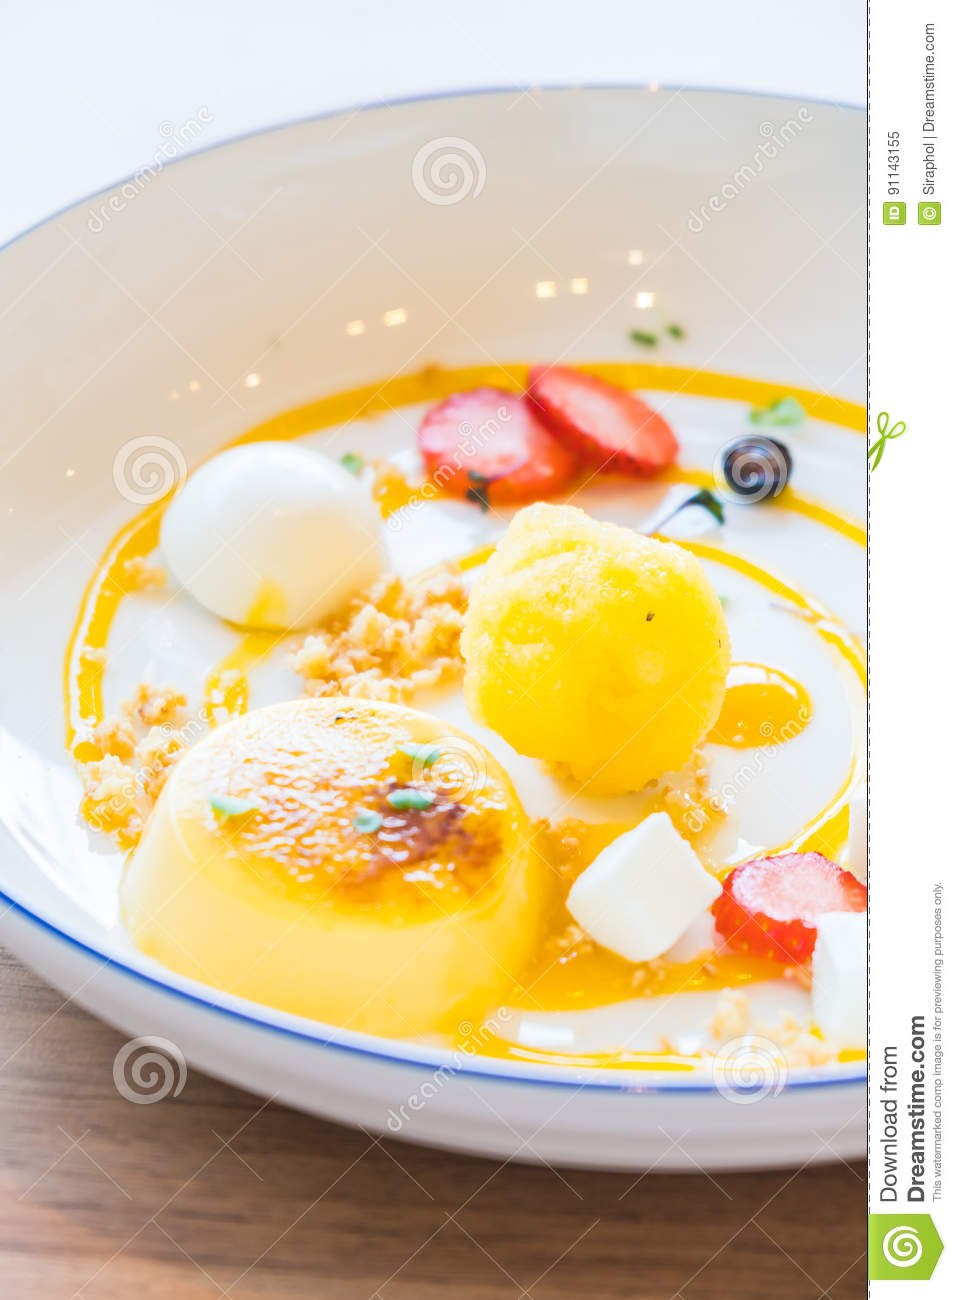 Passion Fruit Sauce For Cake